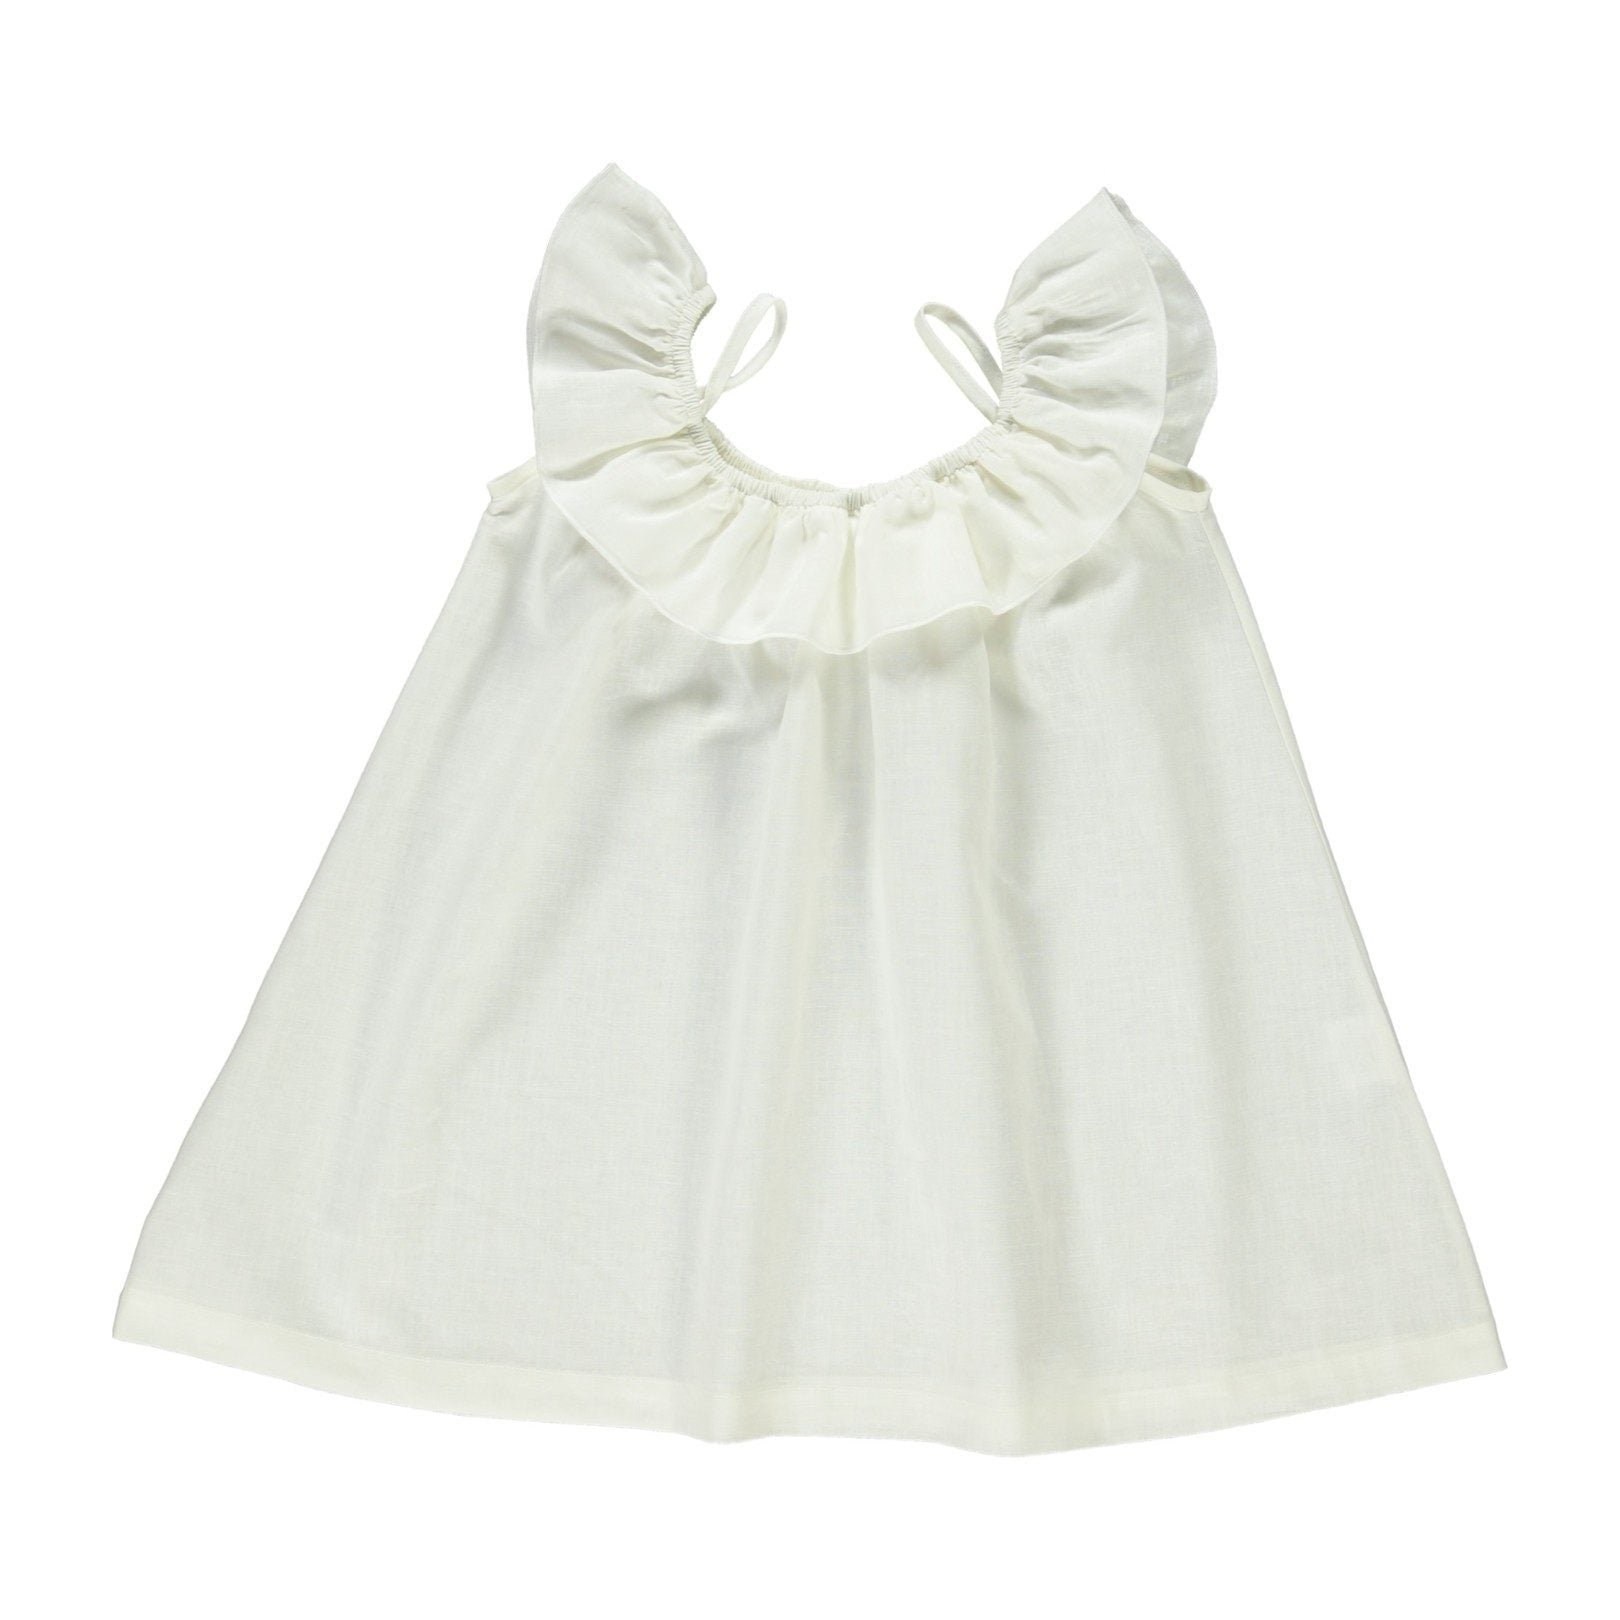 ORGANIC COTTON  BIRGITA DRESS, WHITE  | BEBE ORGANIC - Spinel Boutique